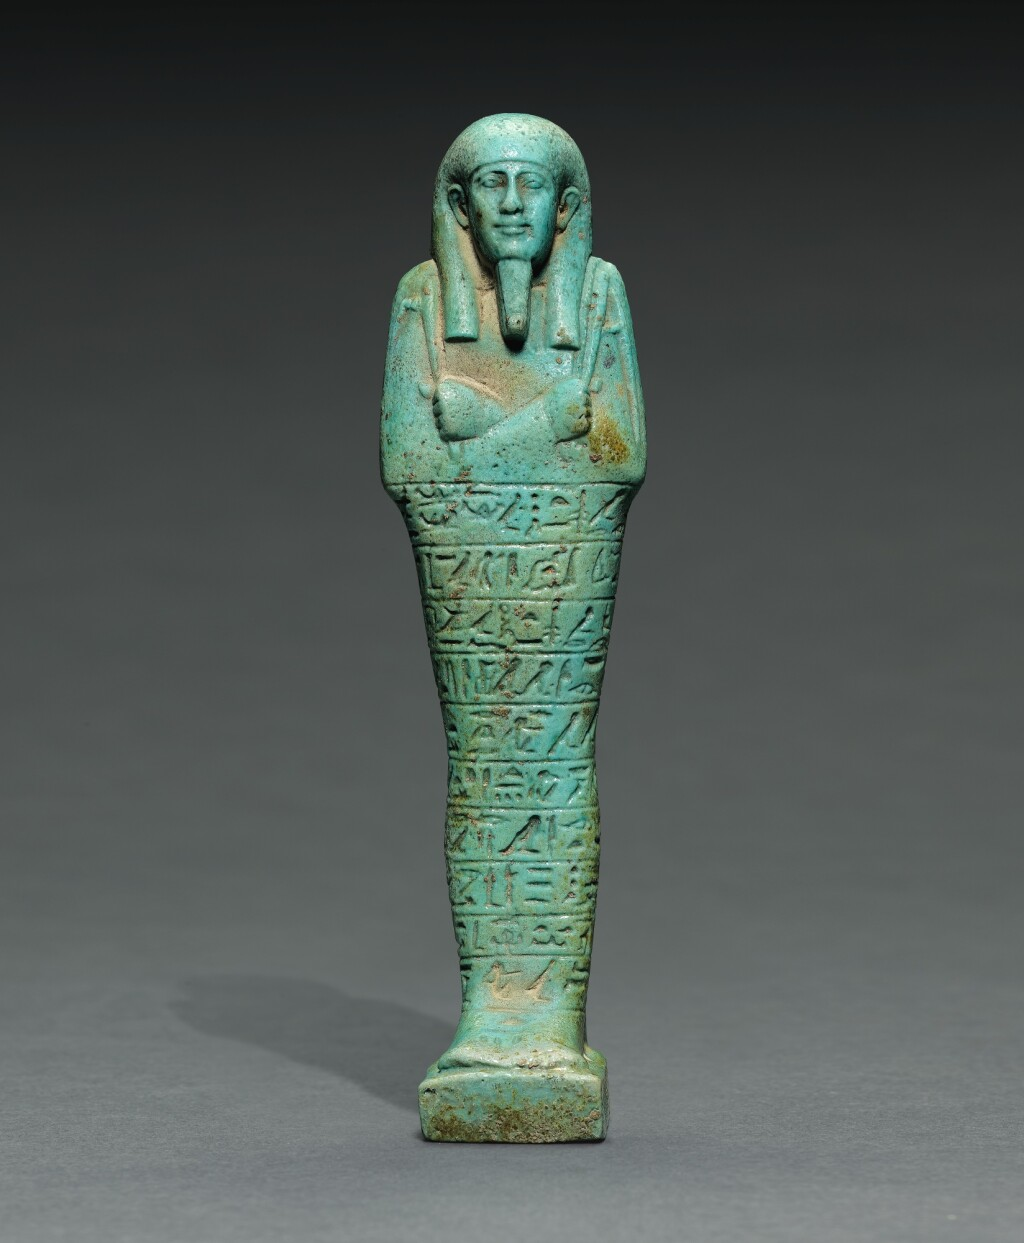 AN EGYPTIAN TURQUOISE FAIENCE USHABTI OF TJAI-NE-HEBU, ADMIRAL OF THE ROYAL FLEET, 26TH DYNASTY, REIGN OF AMASIS, 570-526 B.C.